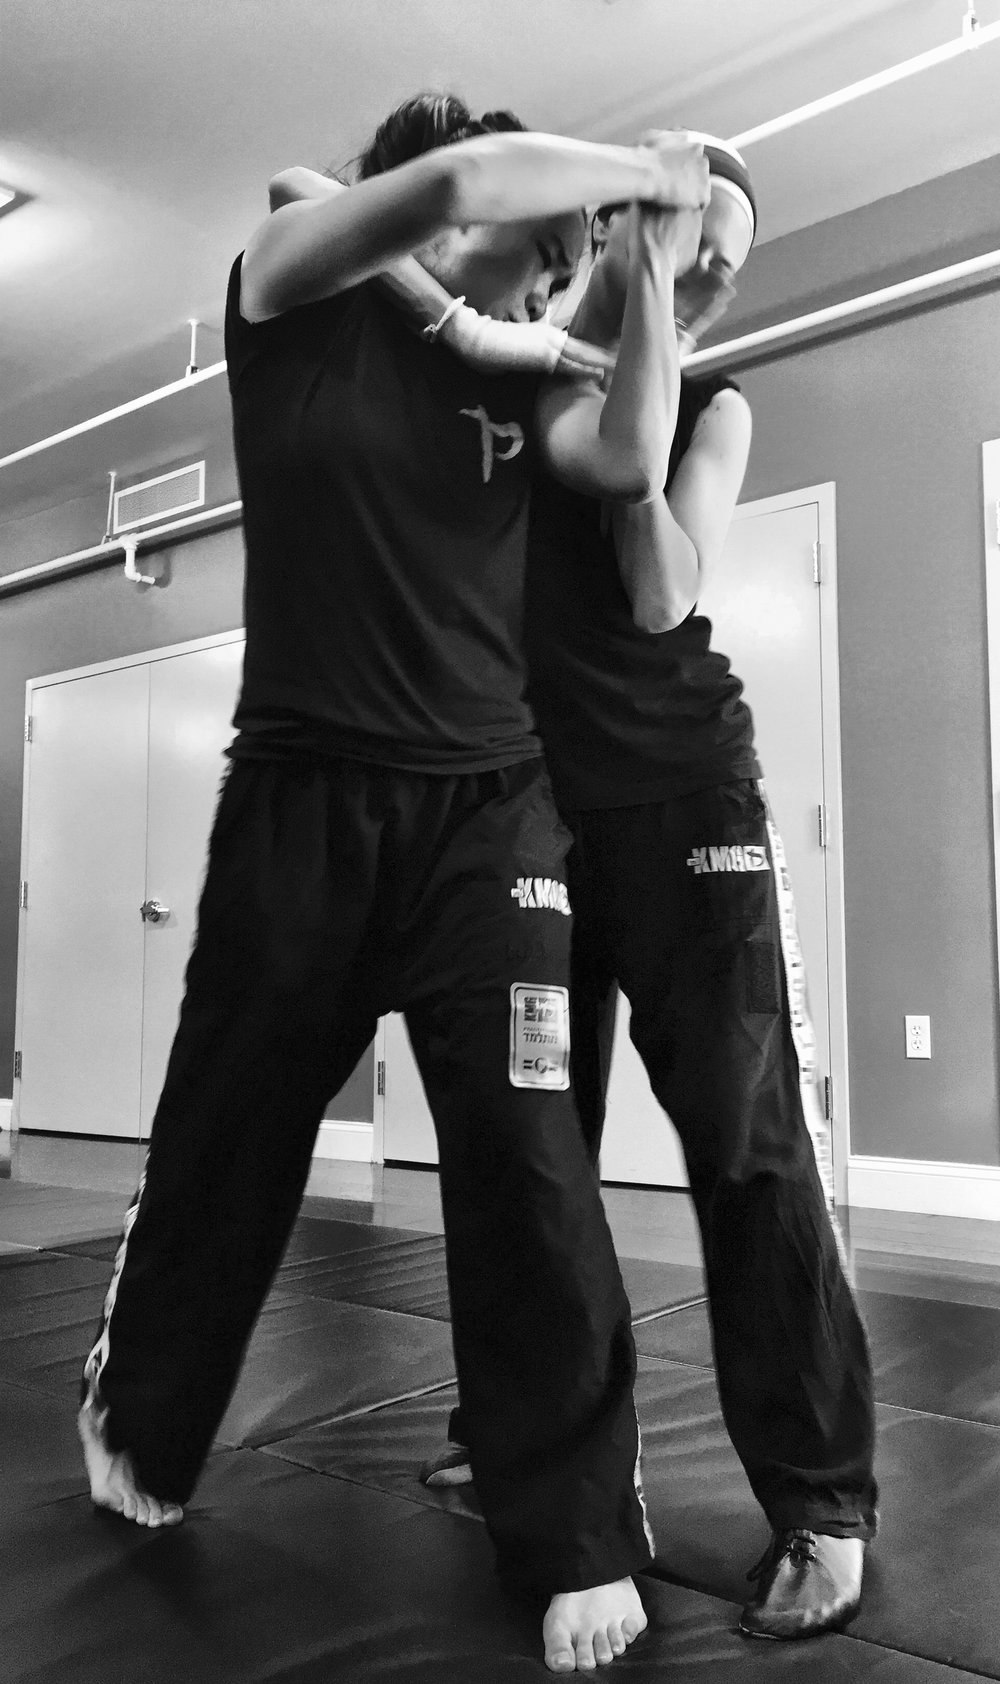 MEMBERSHIP AT PKM IS PRIVATE. - KRAV MAGAThis membership includes an unlimited amount of self defense classes (not including weapons classes) per month. This membership begins on the first use. Each class is two hours long; we advise all students to attend the entire session. You must attend a trial class before being eligible for this membership. There is a 12-month signed agreement necessary for this membership.TIME: UNLIMITED KRAV MAGA / MONTHLY (NOT INCLUDING LIBRE FIGHTING / IMPROVISED WEAPONS TRAINING)PRICE: $200.00 PER MONTHKrav Maga + LIBRE FIGHTING / IMPROVISED WEAPONS / ESCAPE & EVASION TACTICSThis membership includes unlimited Krav Maga classes plus eight Libre Fighting / Improvised Weapons / Escape & Evasion Tactics skills classes per month. This membership begins on the first use. There is a 12-month signed agreement necessary for this membership.TIME: UNLIMITED KRAVA MAGA + UNLIMITED LIBRE FIGHTING / IMPROVISED WEAPONS / ESCAPE & EVASION TACTICS TRAININGPRICE: $250.00 PER MONTHYou are required to attend a trial class before being eligible for membership. Trial classes are $25.00 and non-refundable.Founder Henoch Otero will contact you to schedule your trial class once you have completed your reservation below.